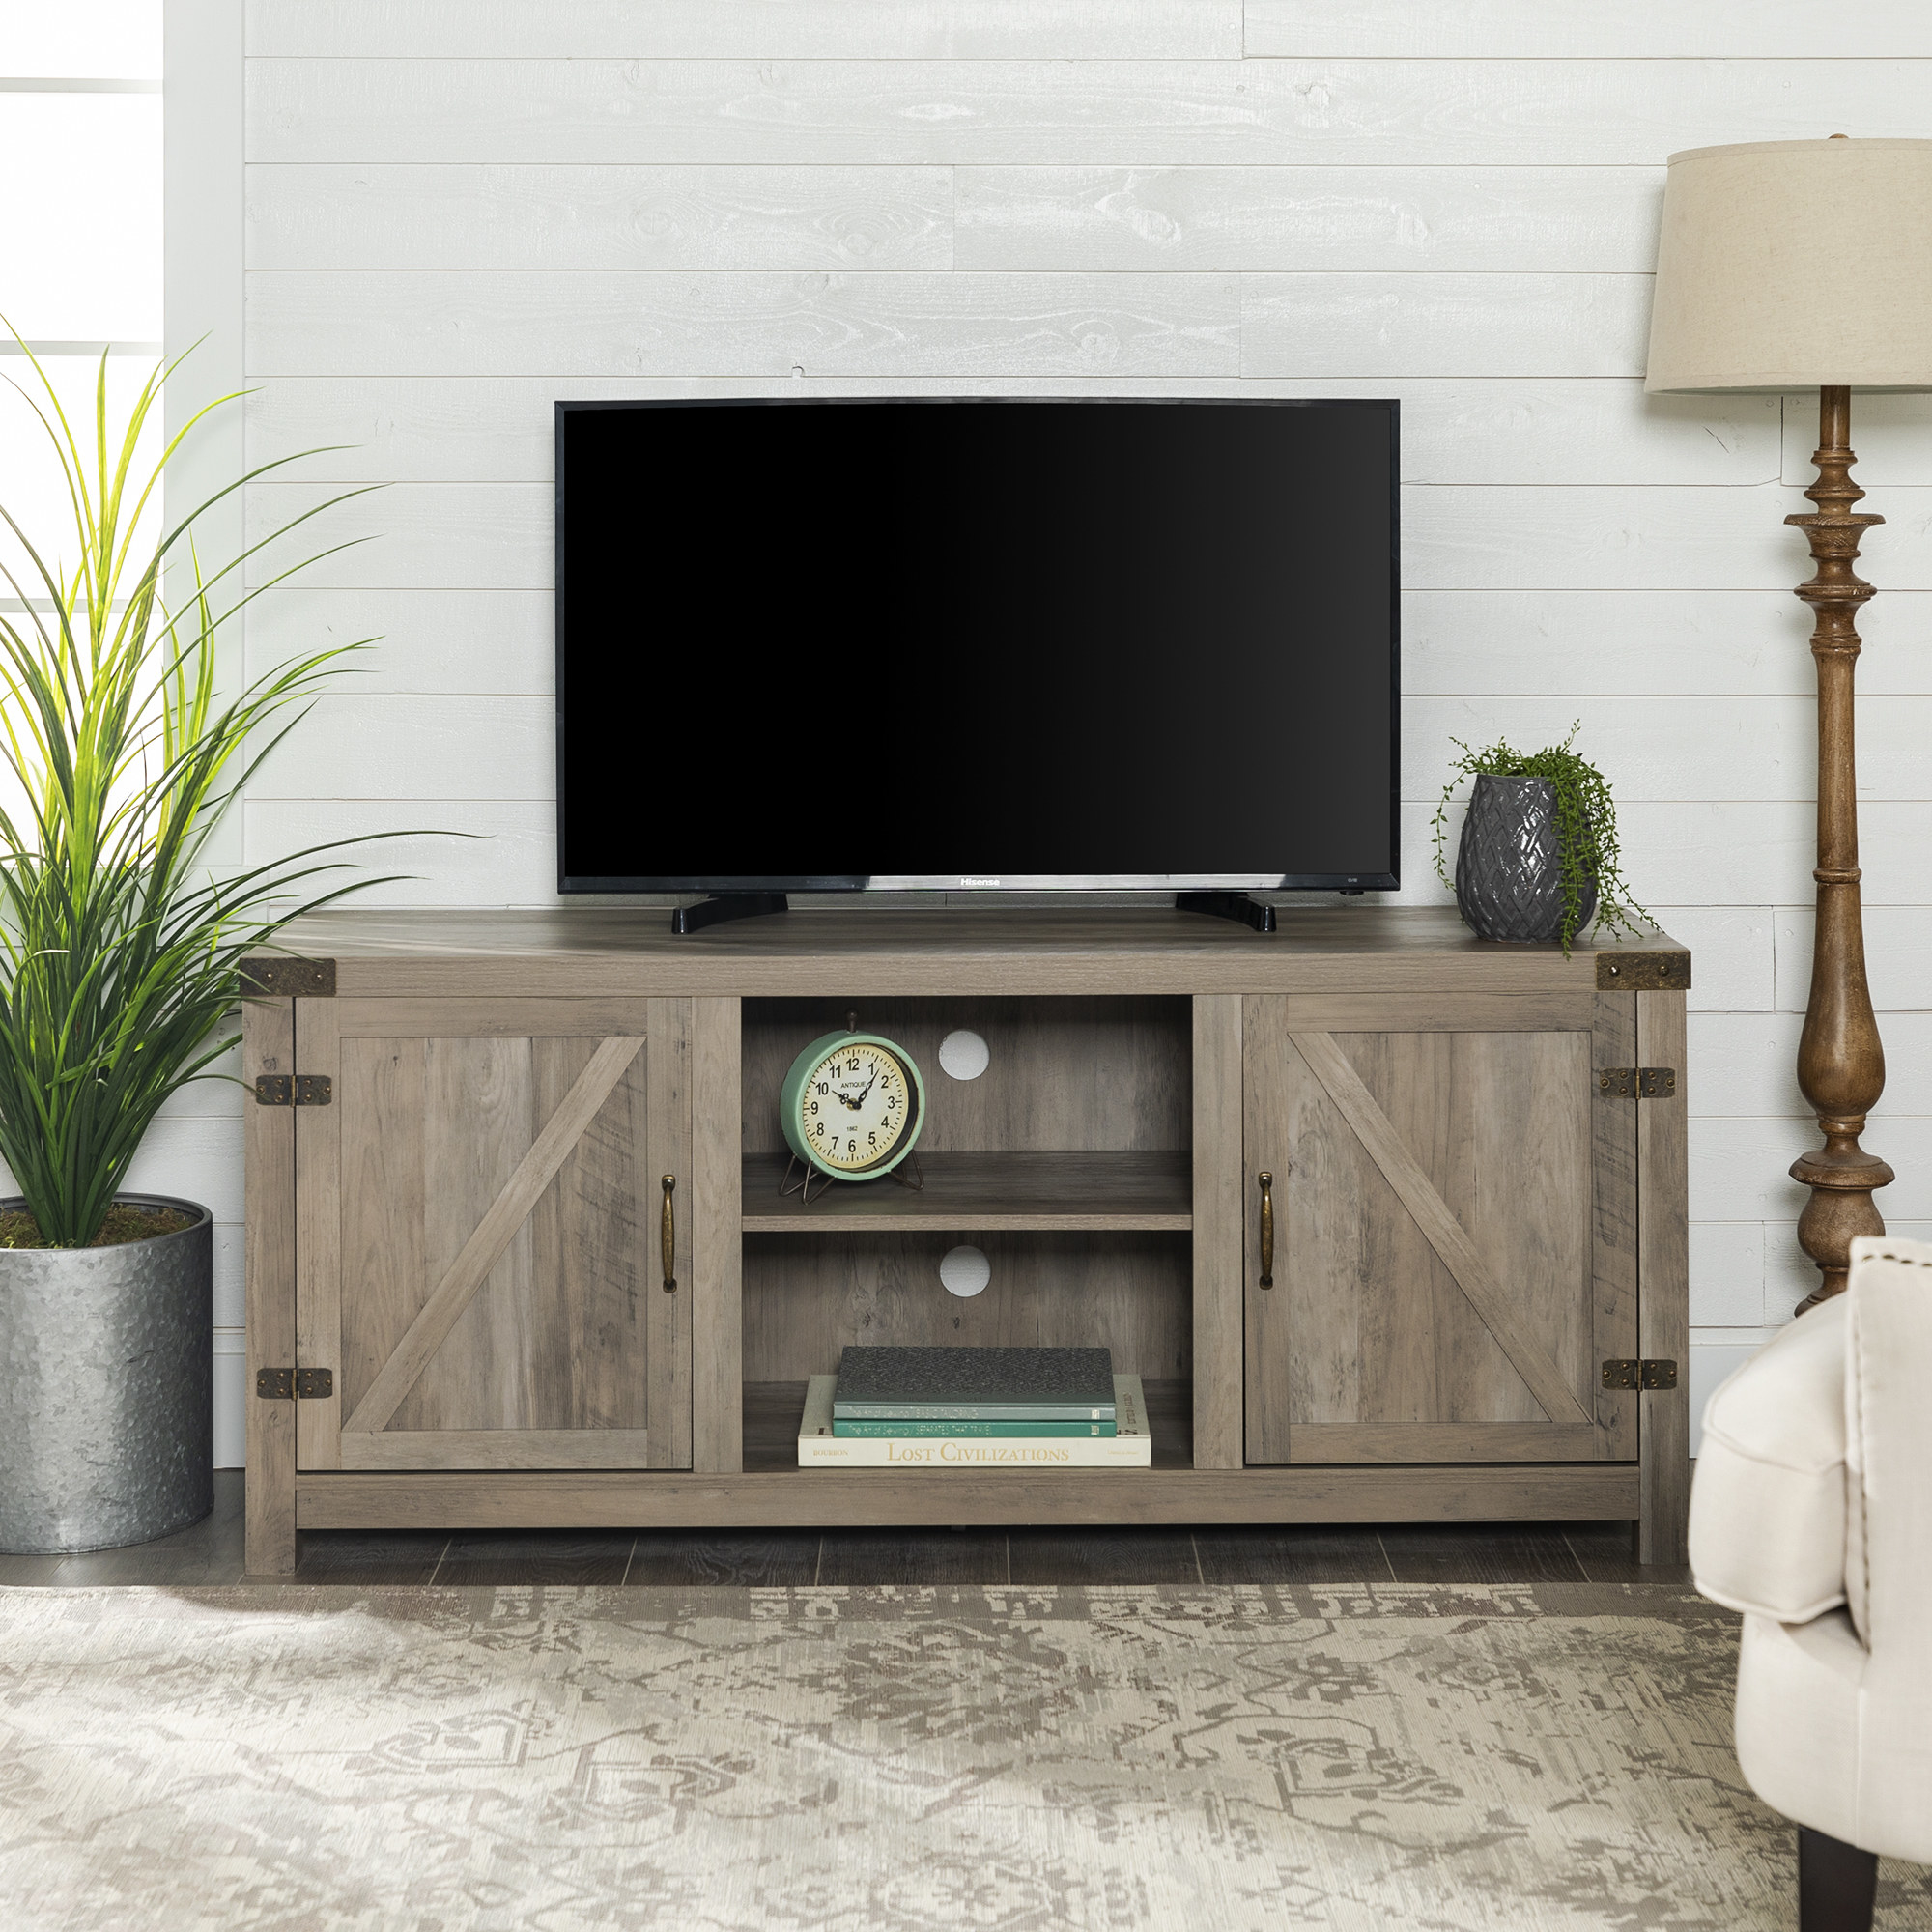 The TV stand, which has exposed shelves in the middle and two cabinets on either side